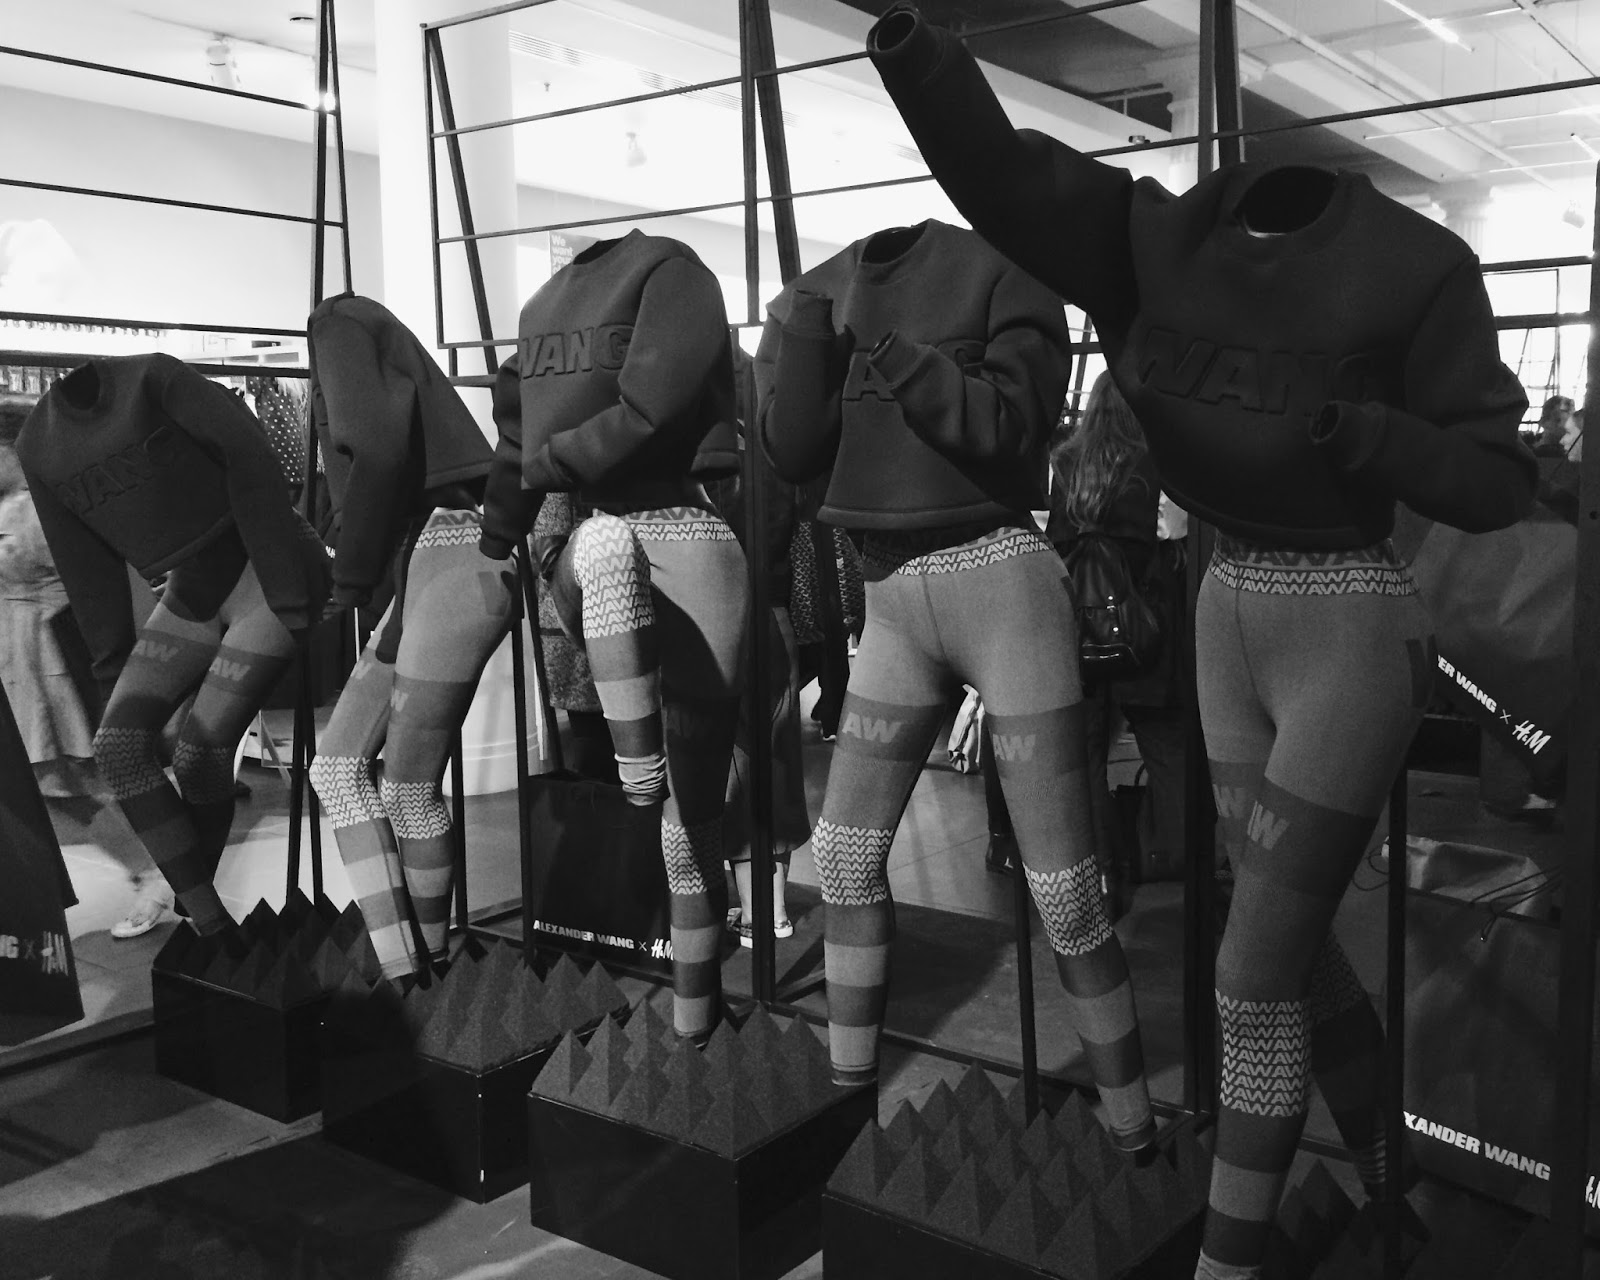 Alexander Wang x H&M Collection - Mannequins